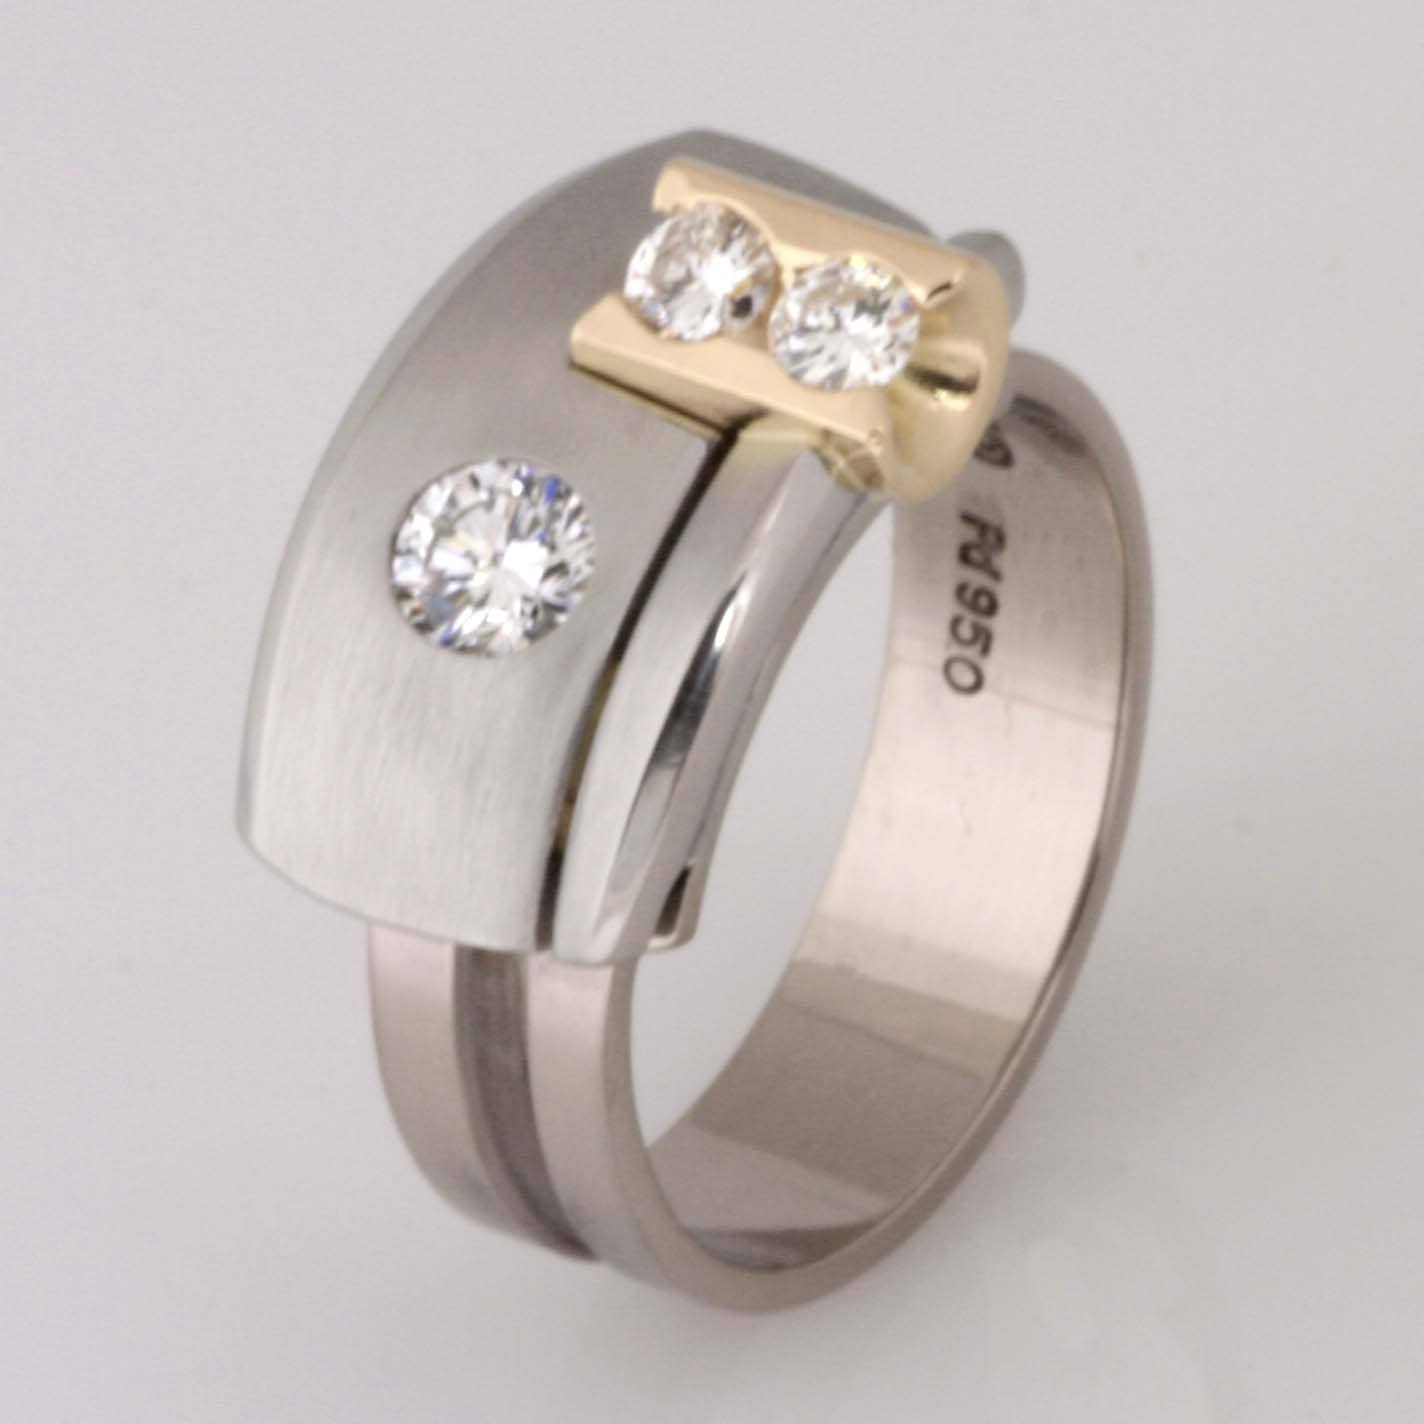 Handmade 'Archie' style 18ct white and yellow gold and palladium diamond ring